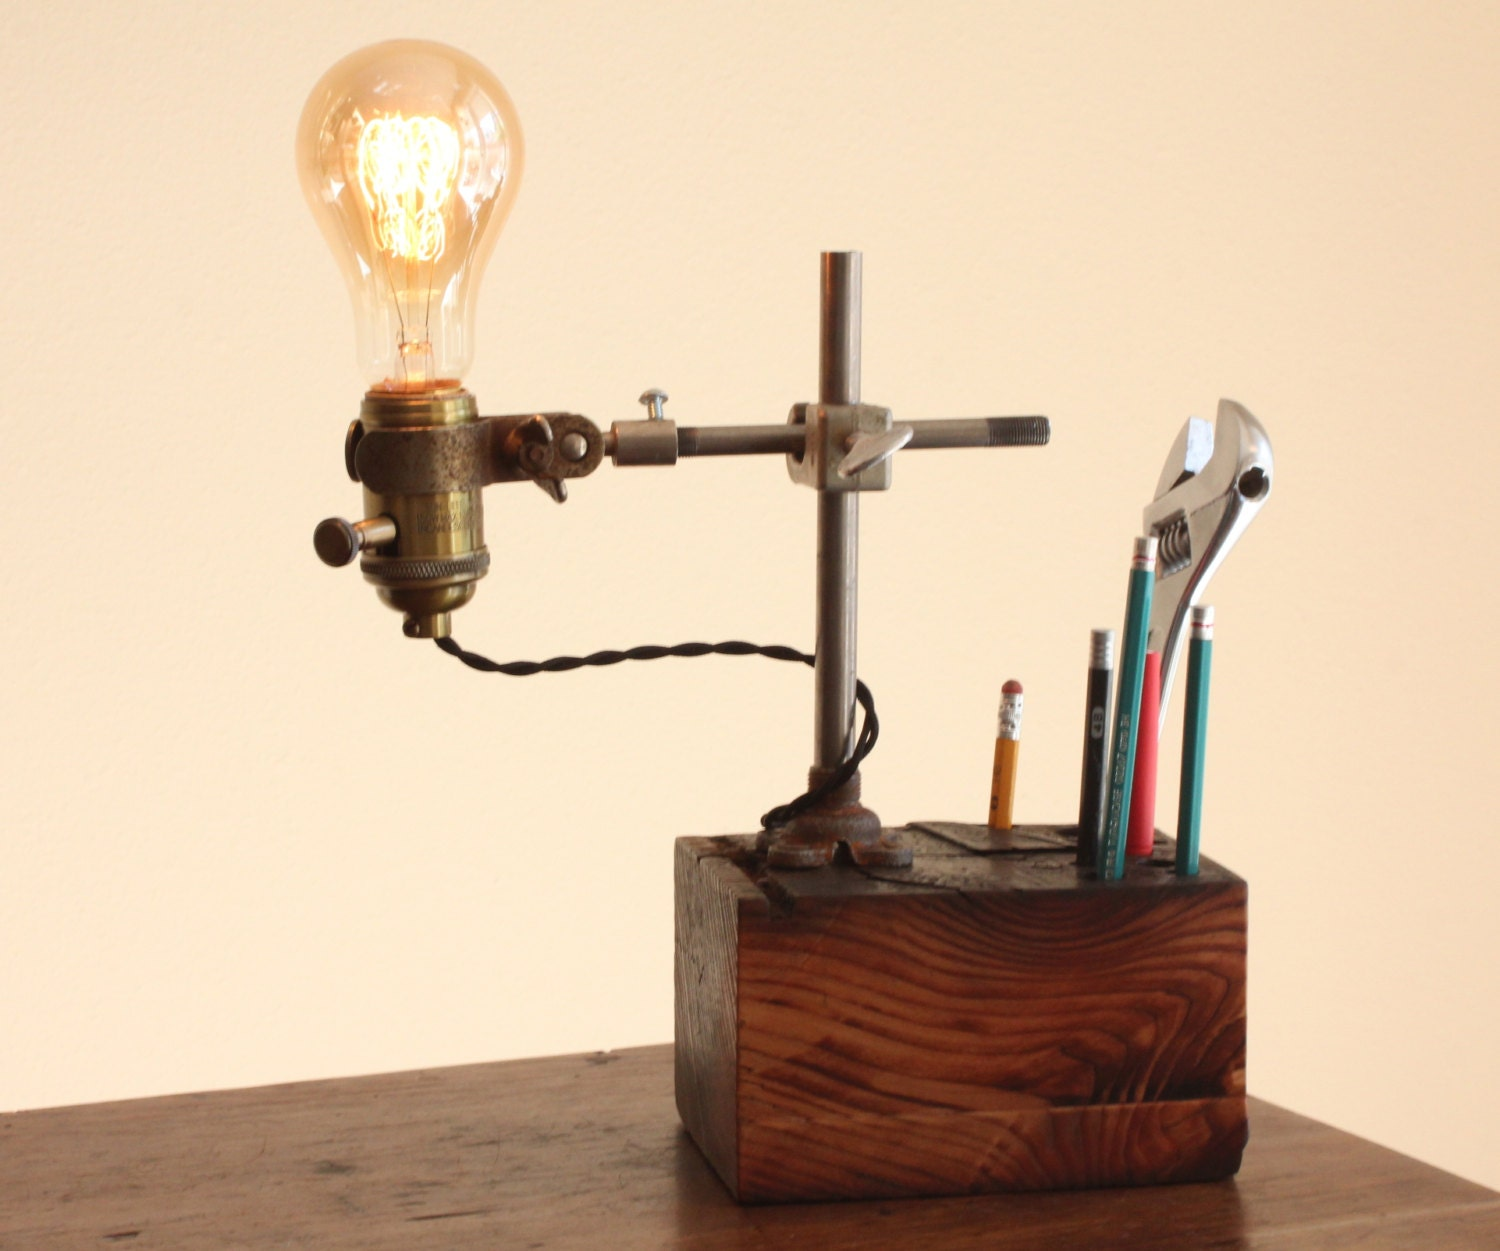 Reclaimed Wood Desk Organizer Lamp Industrial Desk Accessory